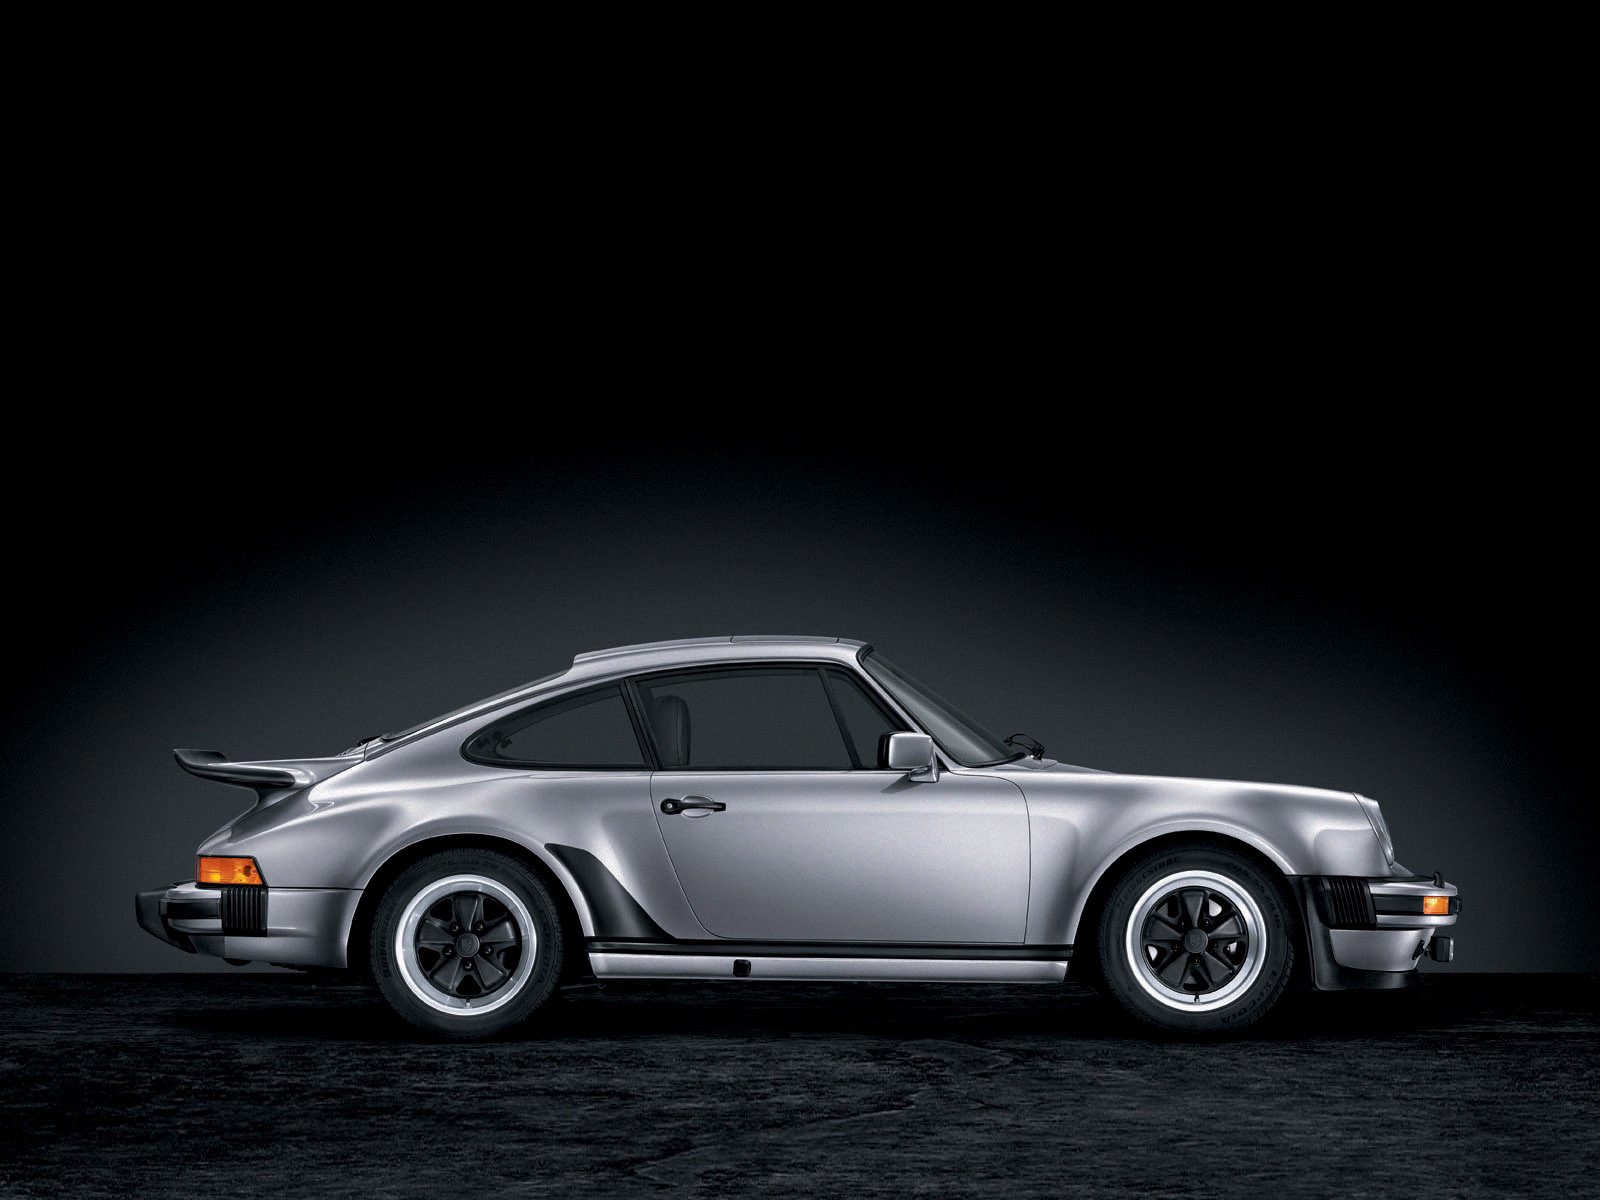 WANTED: Porsche 930 Turbo ('75-'77 3 0-liter or '78-'79 3 3